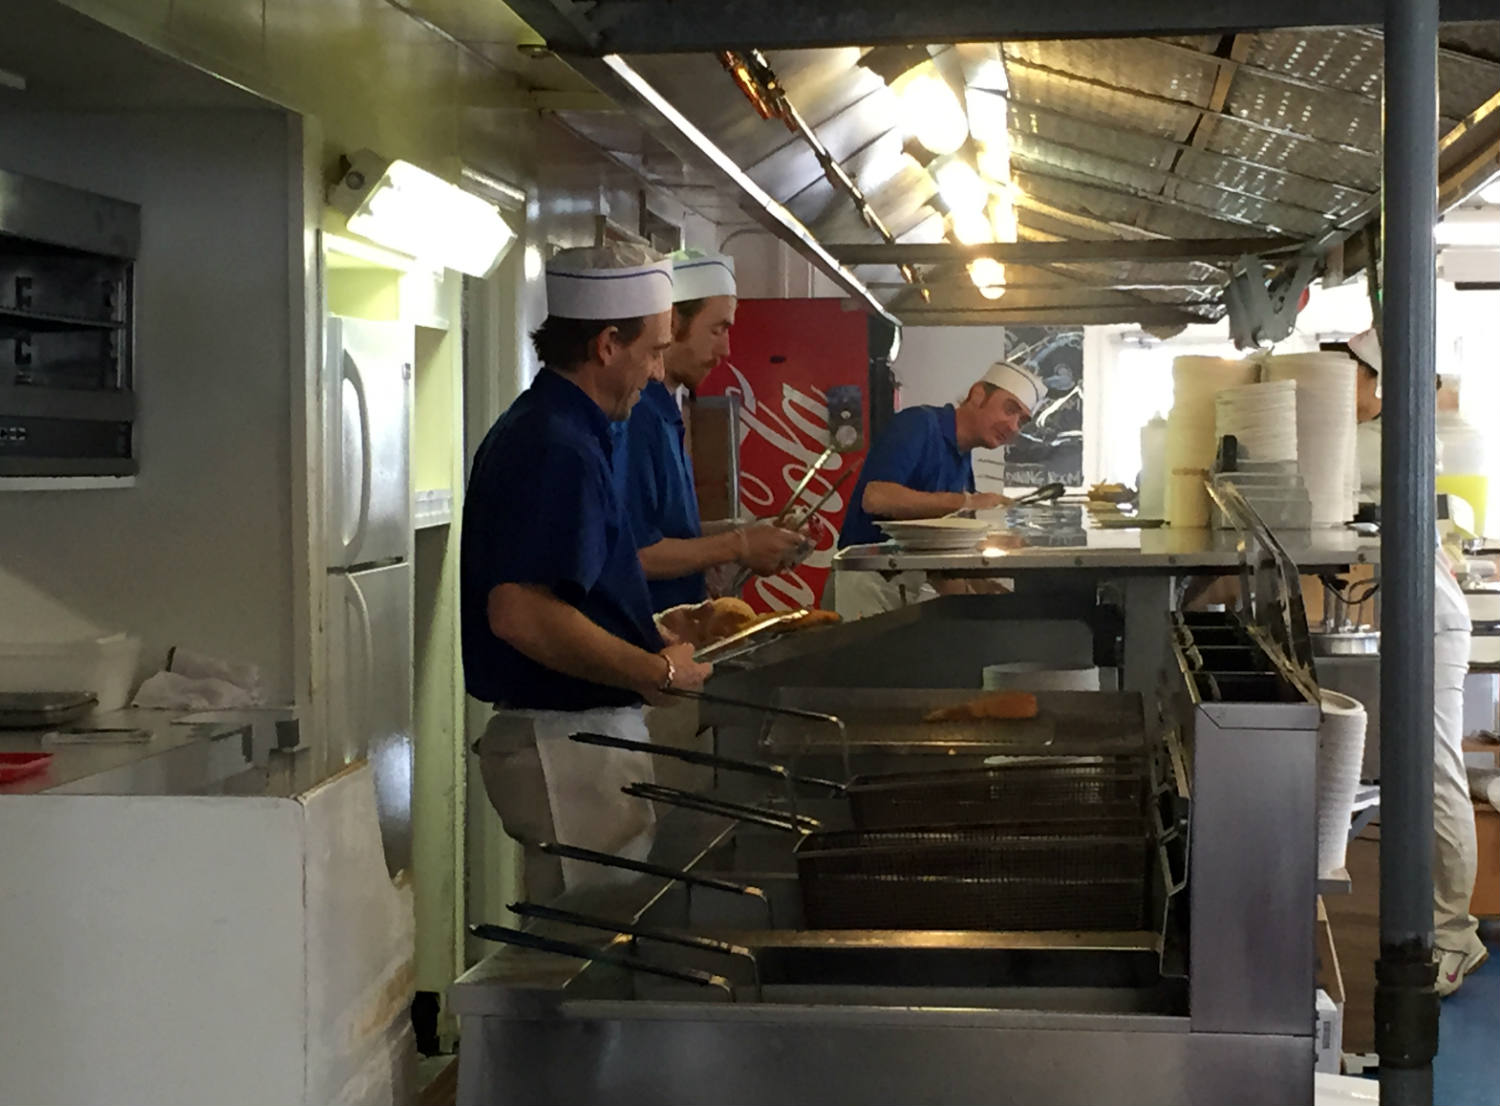 Grill Cooks at Rudy's in Oswego, NY